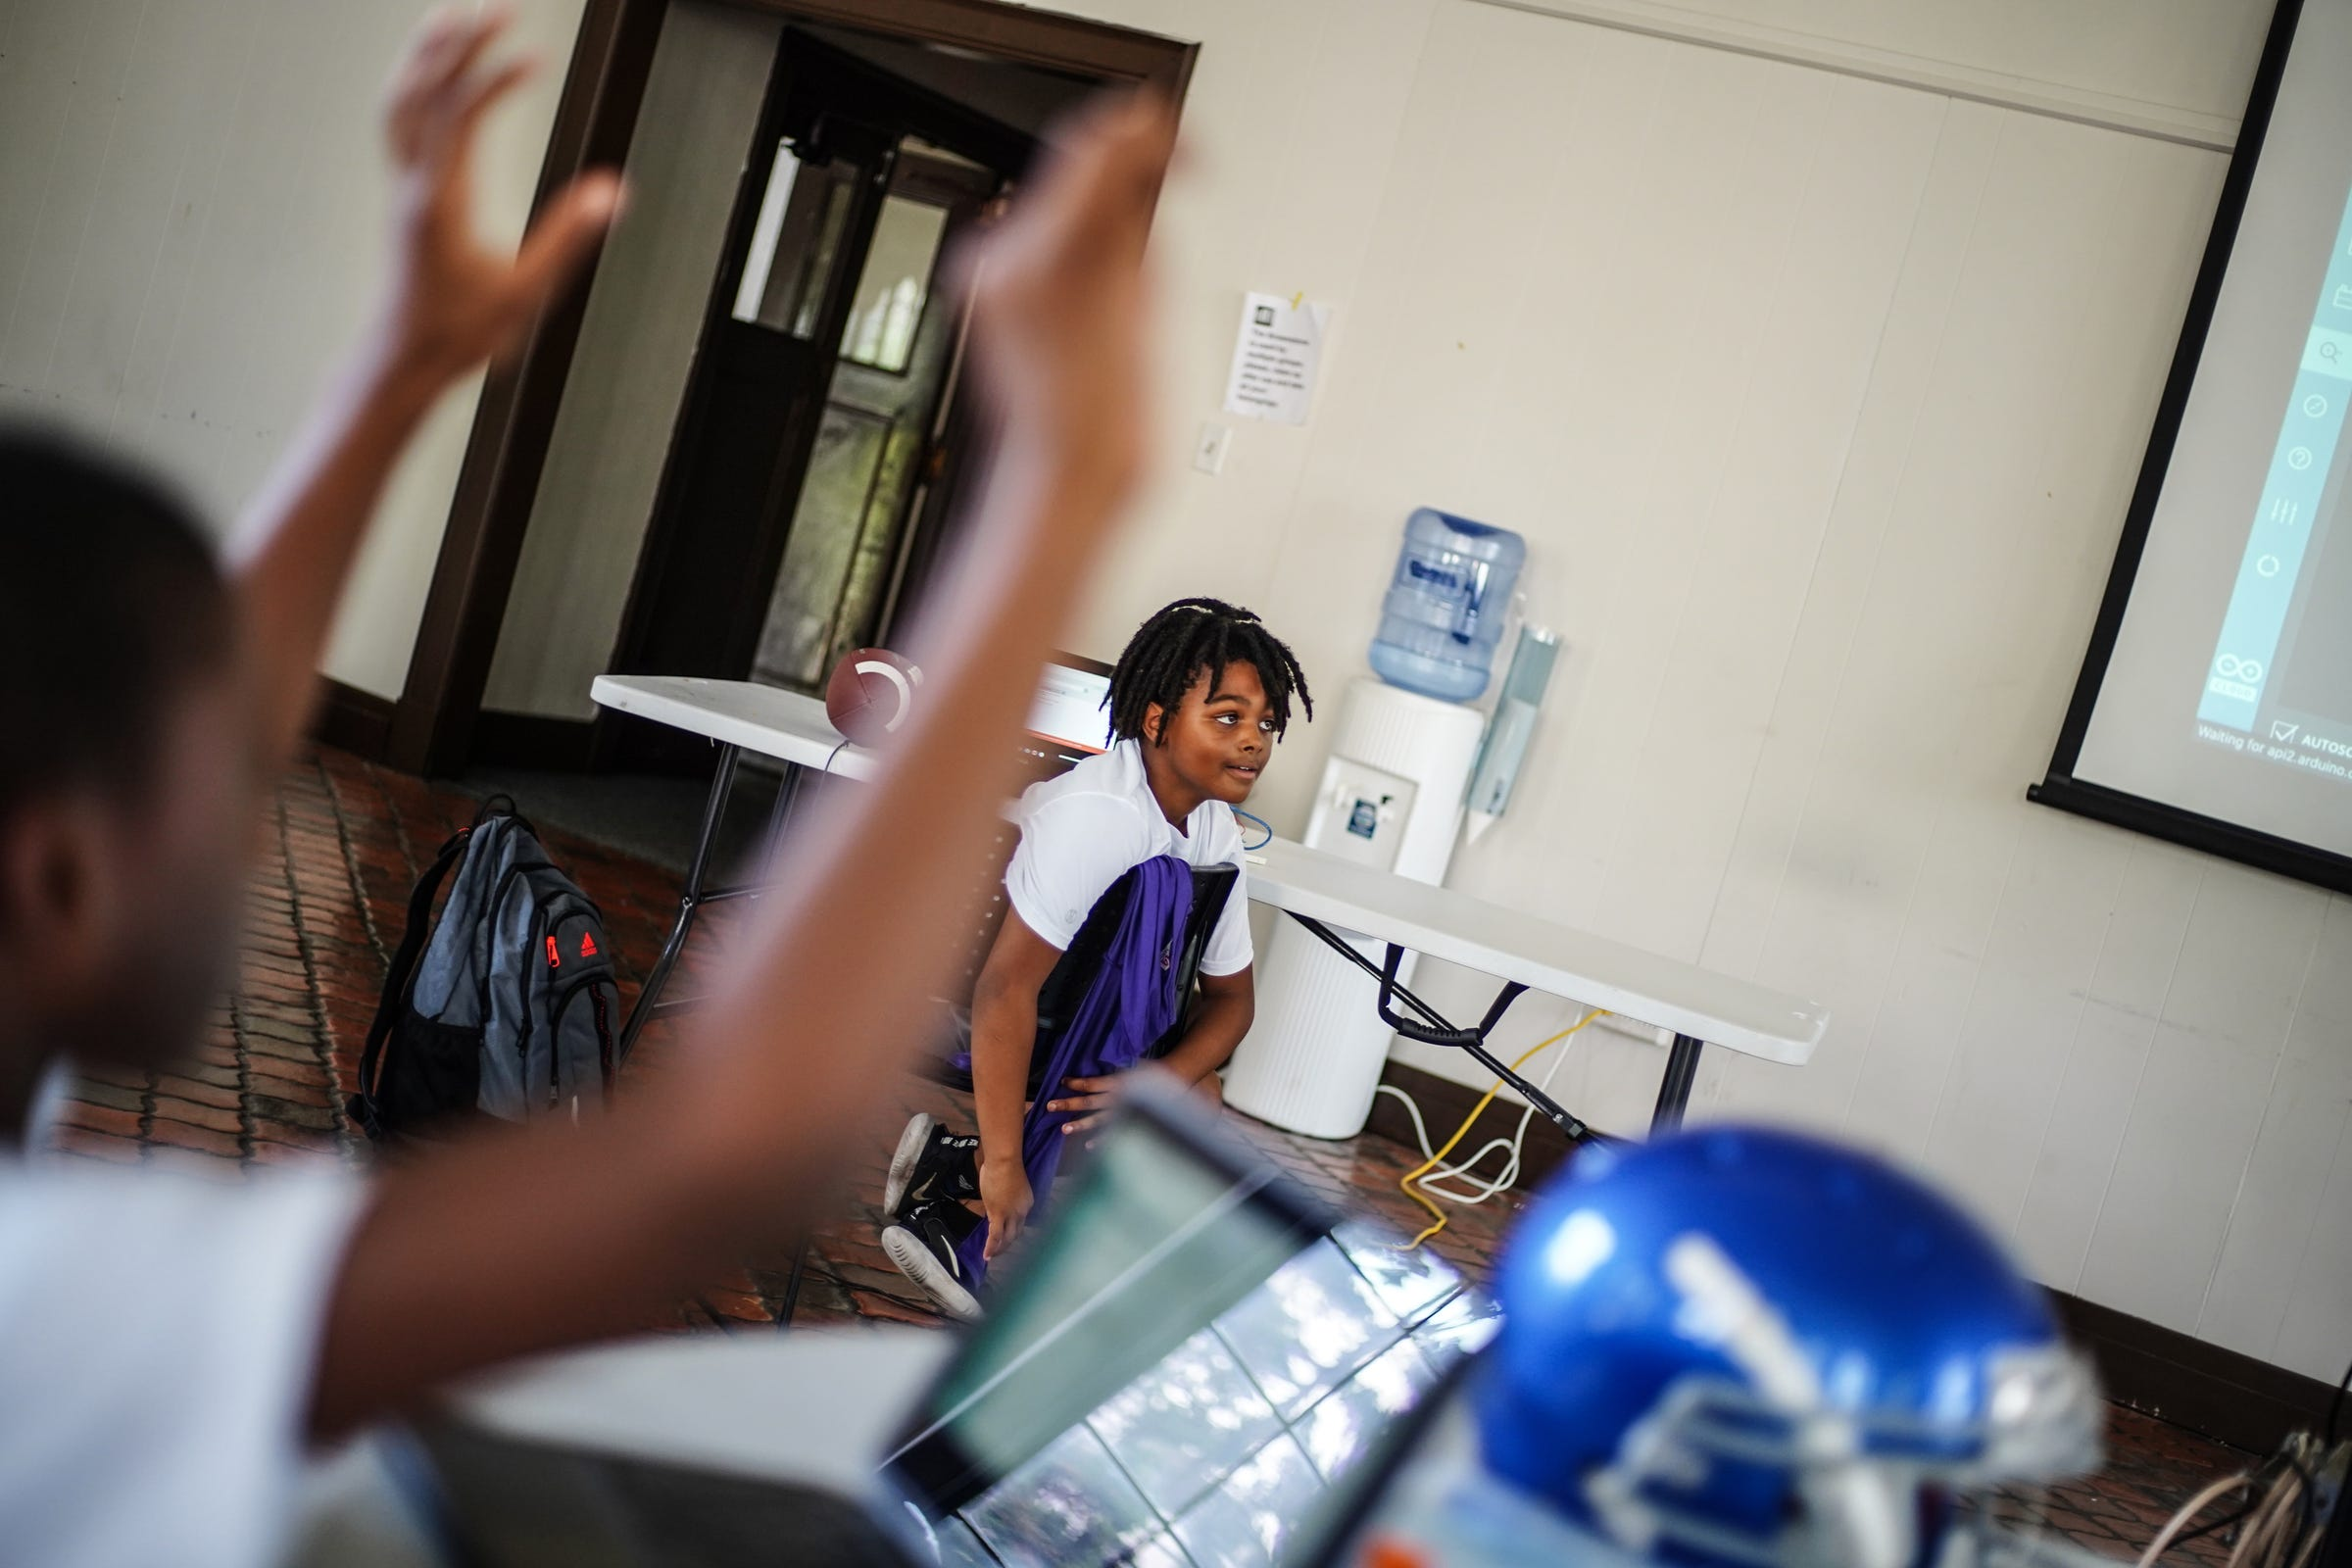 Detroit City Lions players in robotics class at Marygrove College in Detroit on July 29, 2021. Detroit City Lions, a youth program founded by Devon Buskin is more than a youth football program. The program offers robotics classes, volleyball, musical arts along with football and cheer.